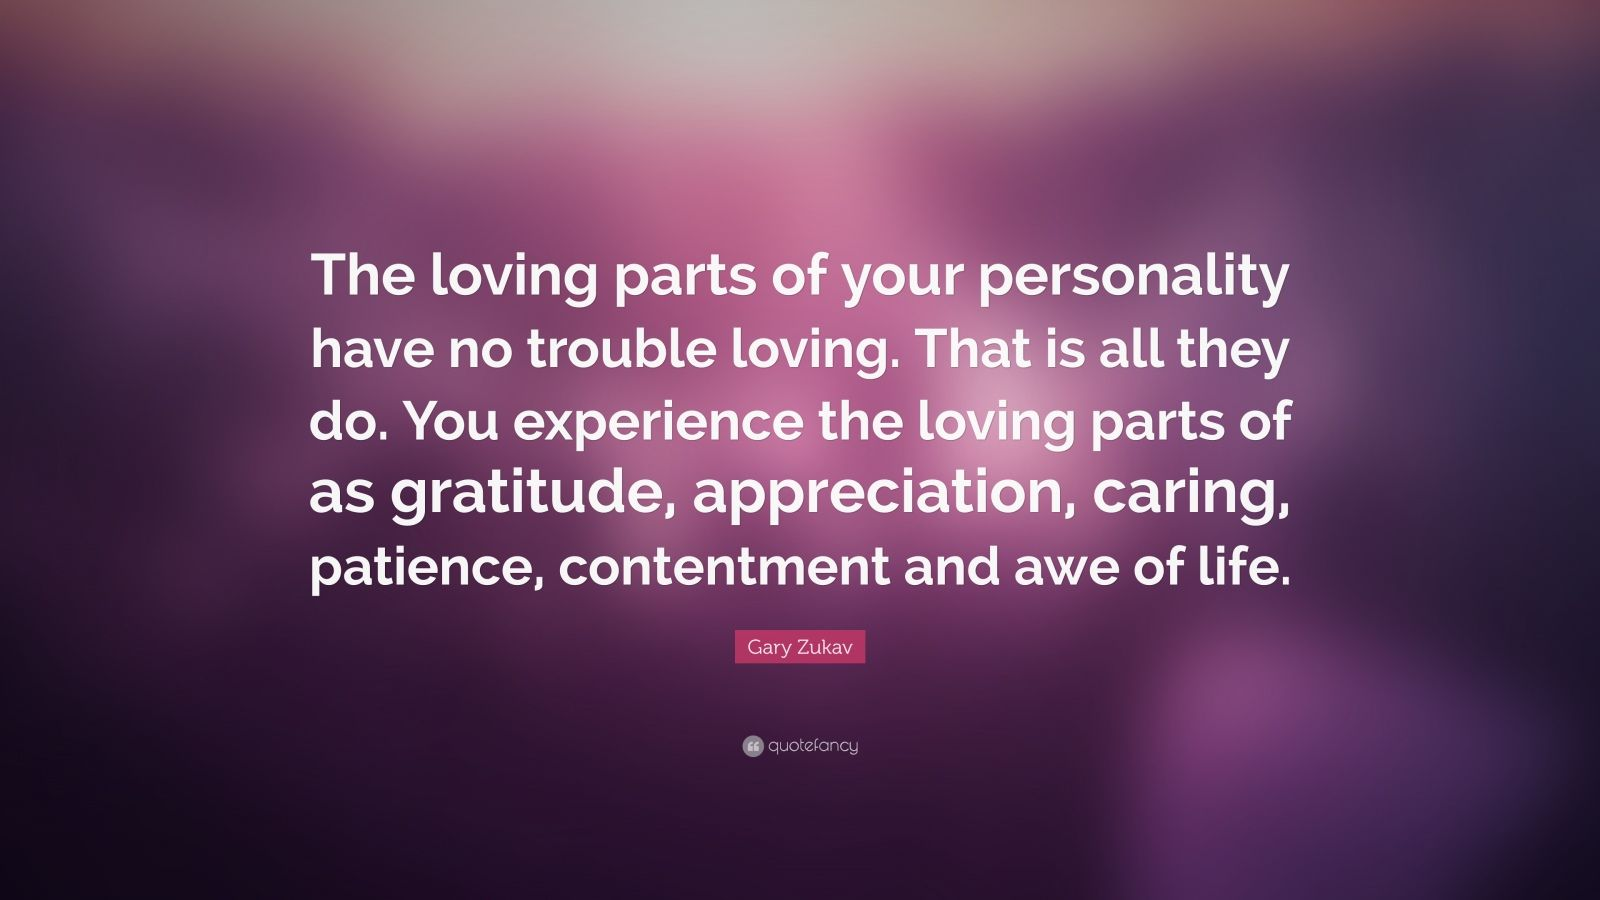 """Gary Zukav Quote: """"The loving parts of your personality have no trouble loving. That is all they do. You experience the loving parts of as gratitude, appreciation, caring, patience, contentment and awe of life."""""""